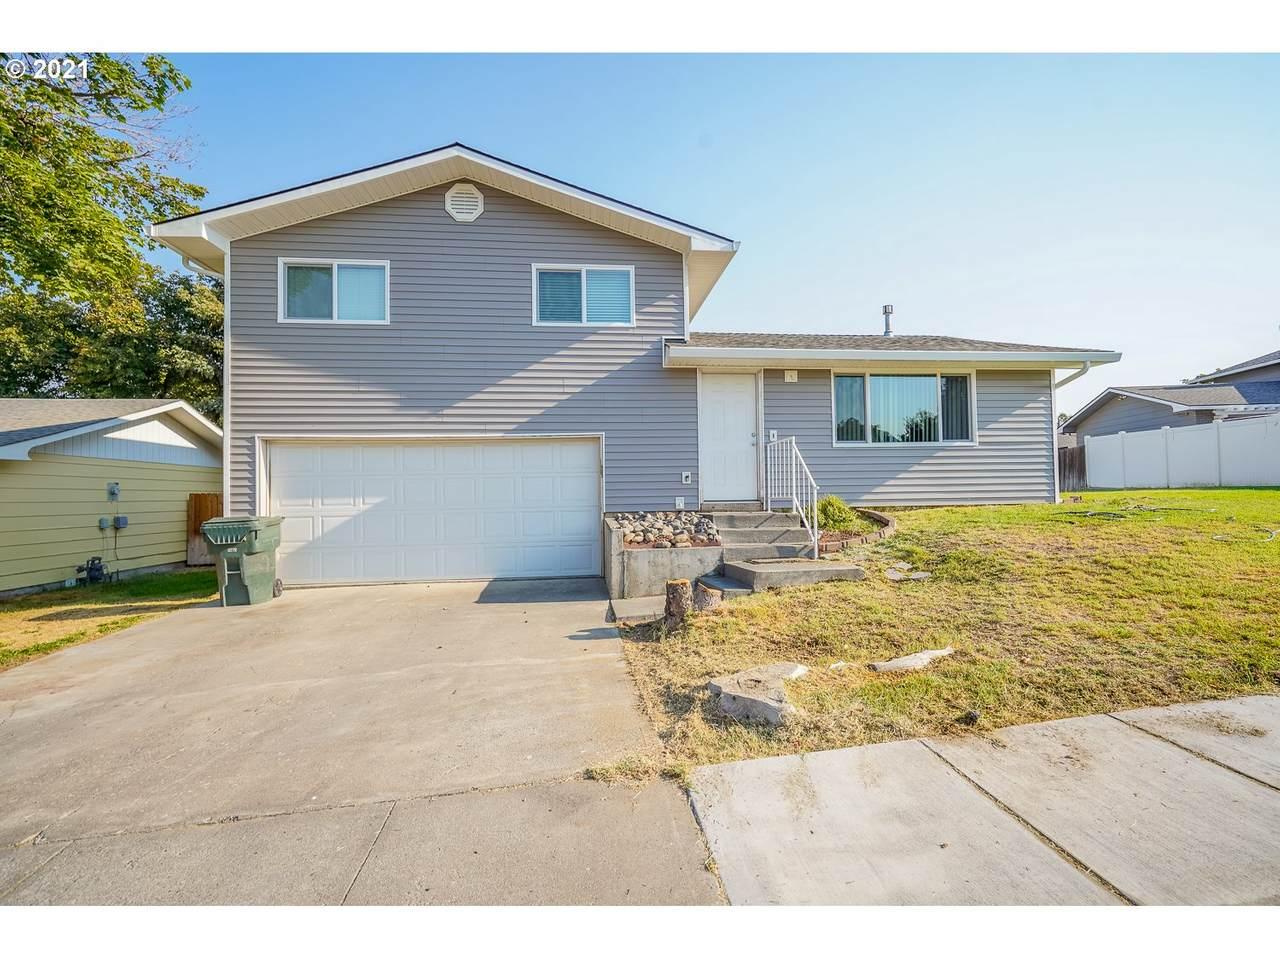 555 Sater Ct - Photo 1